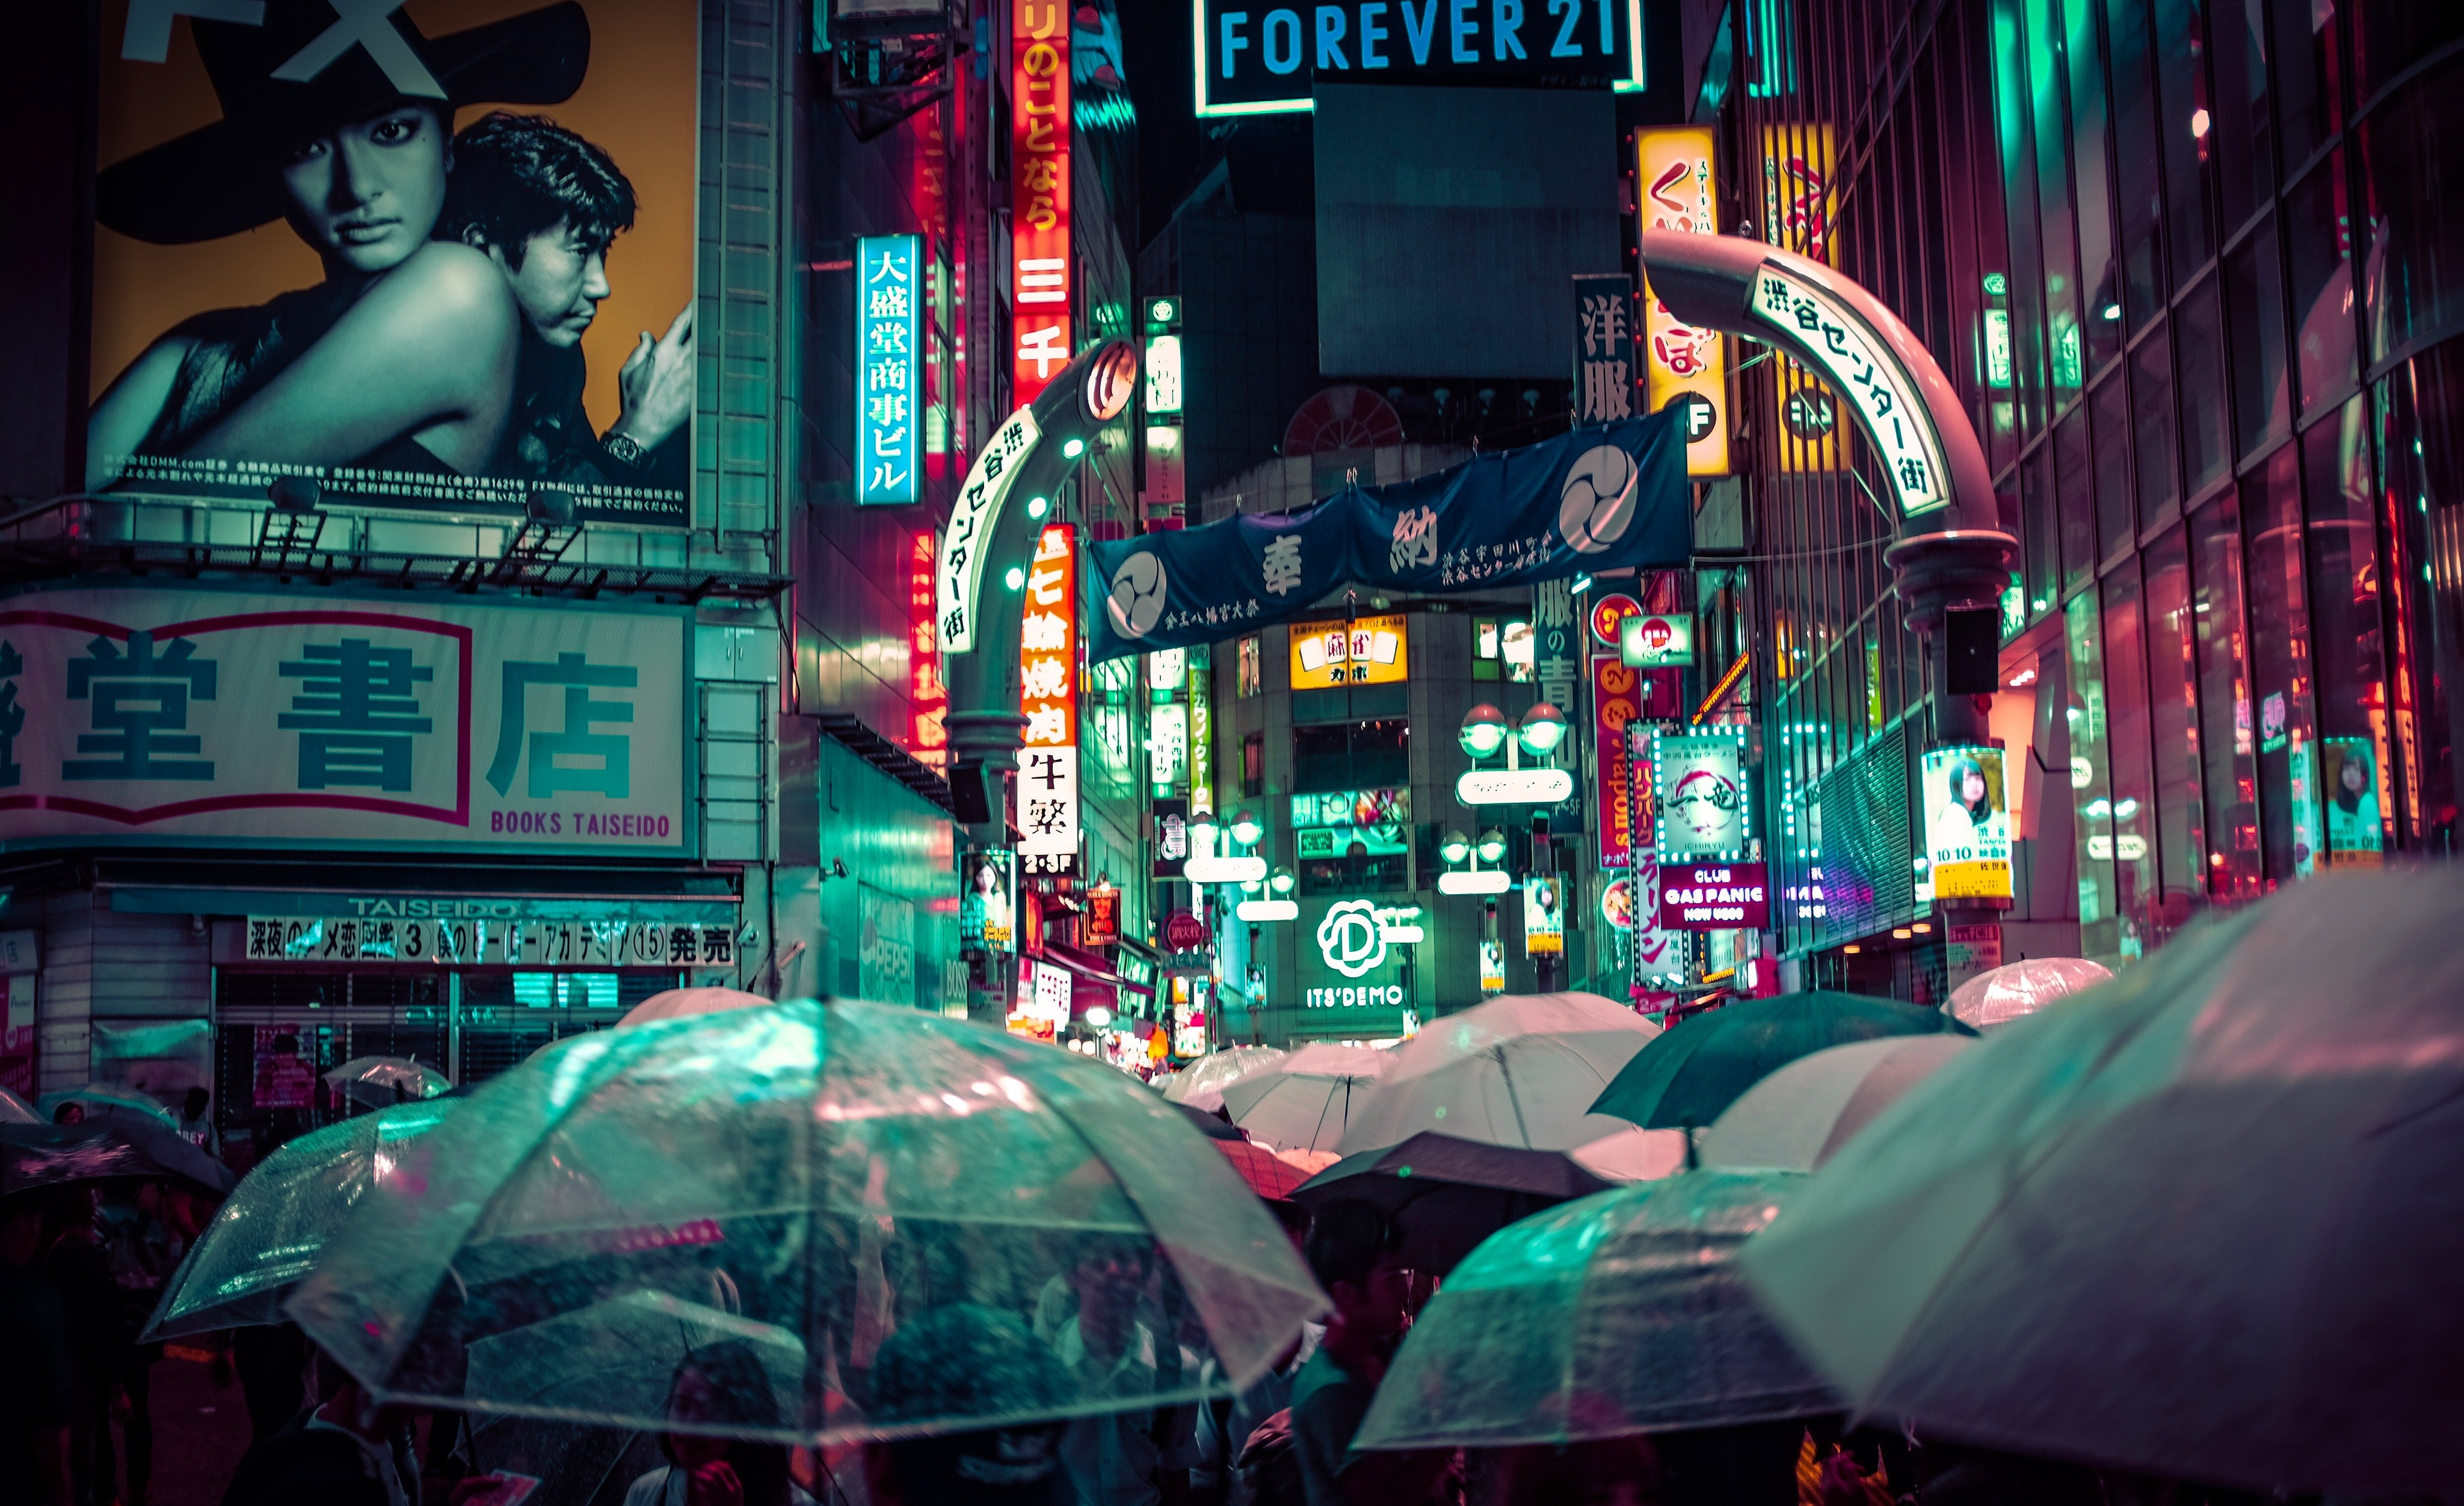 many people using umbrella during nitght time